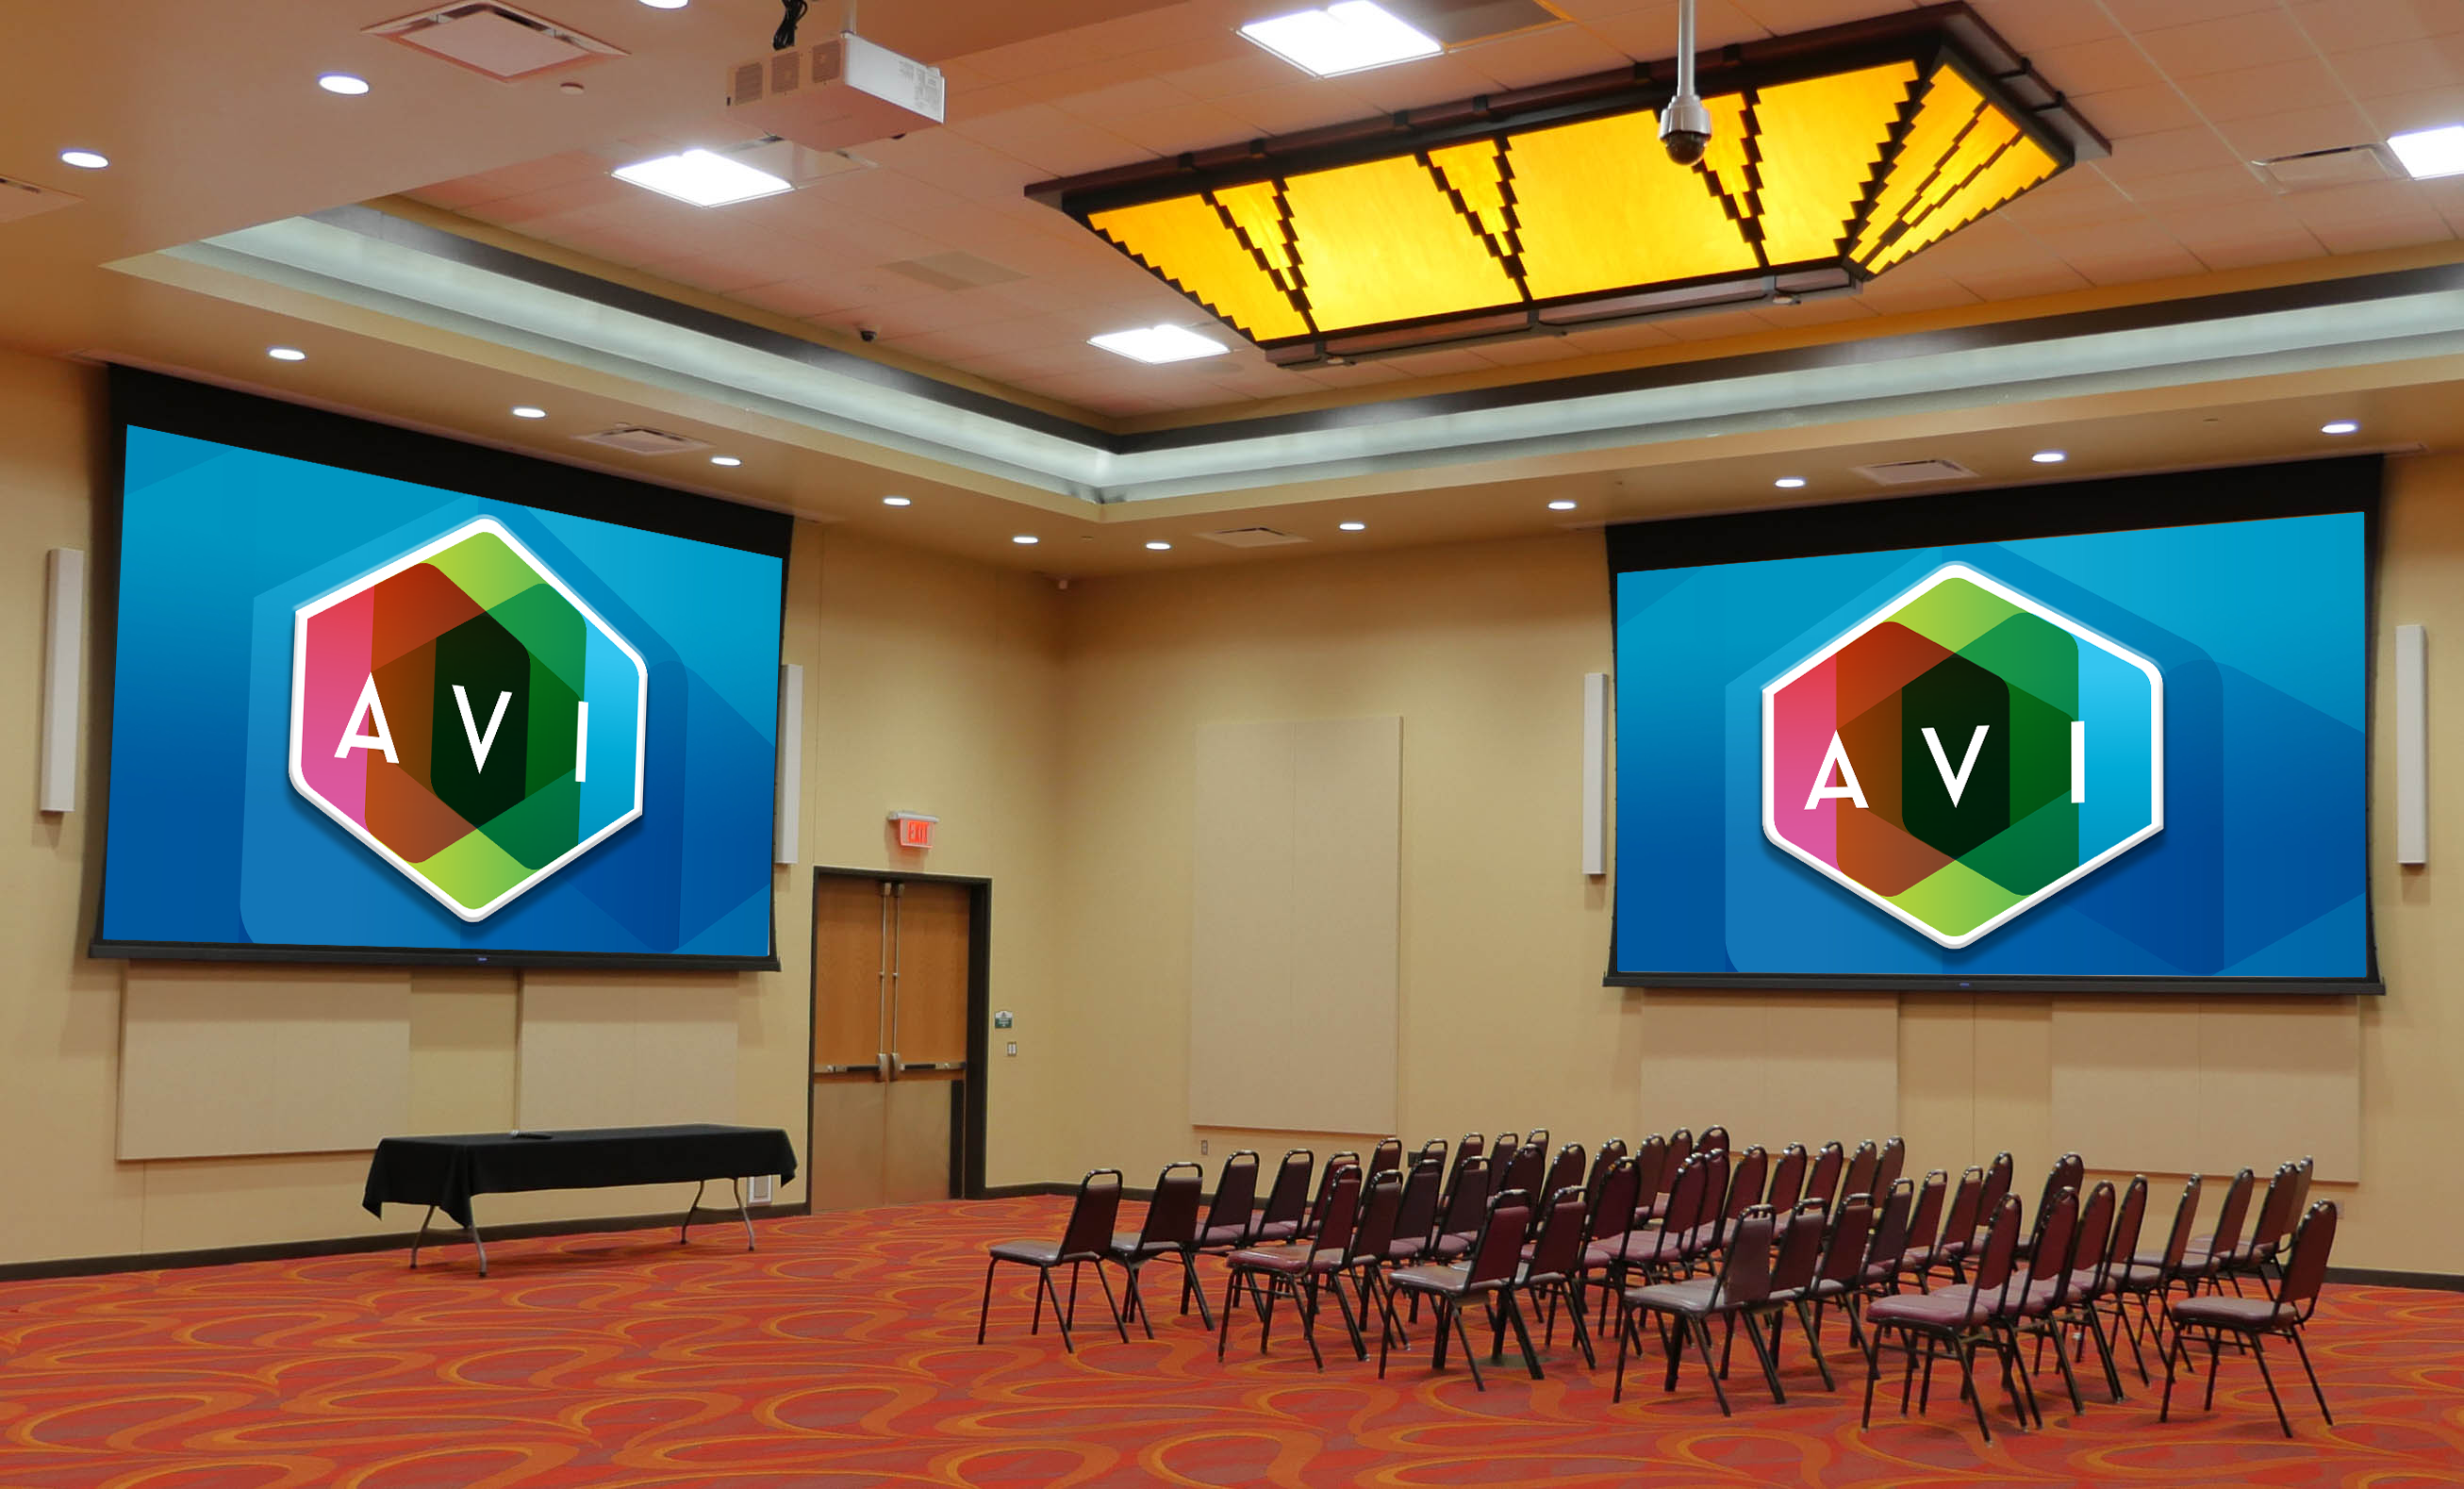 The 4 Bears Casino renovated its event center to include an auditorium where corporate events and parties can be held.